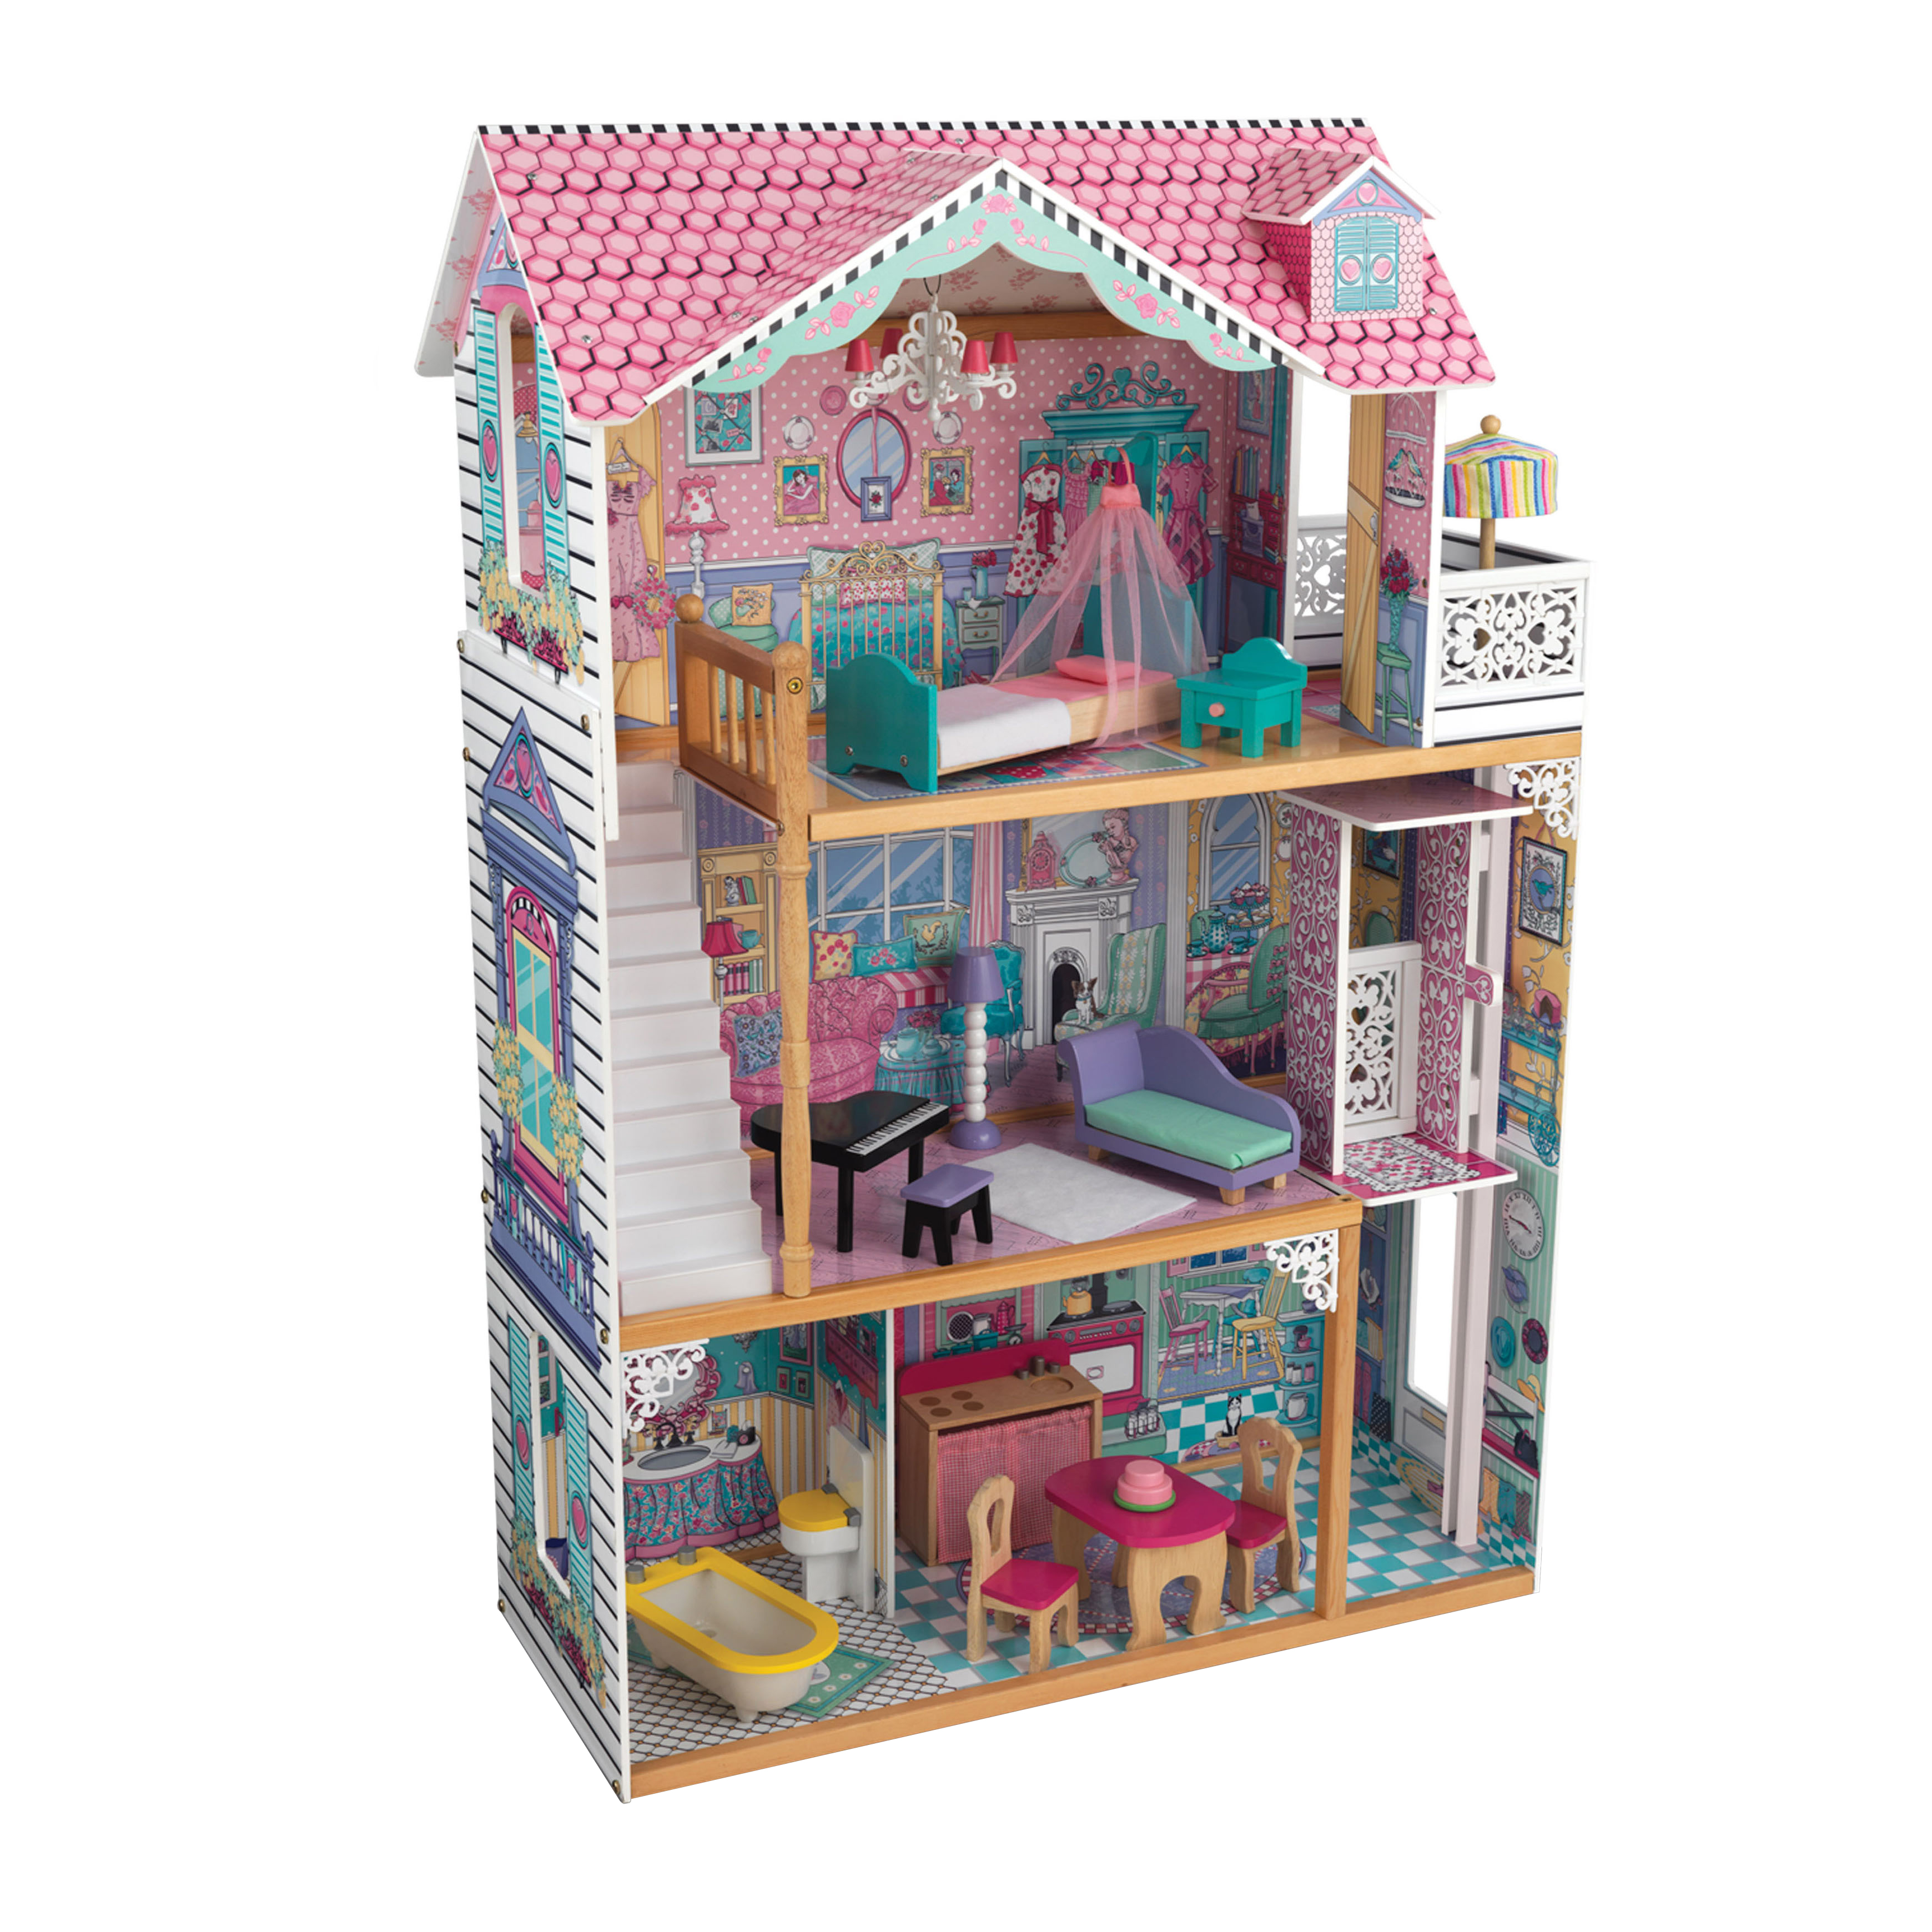 KidKraft Annabelle Dollhouse with 17 Accessories by KidKraft